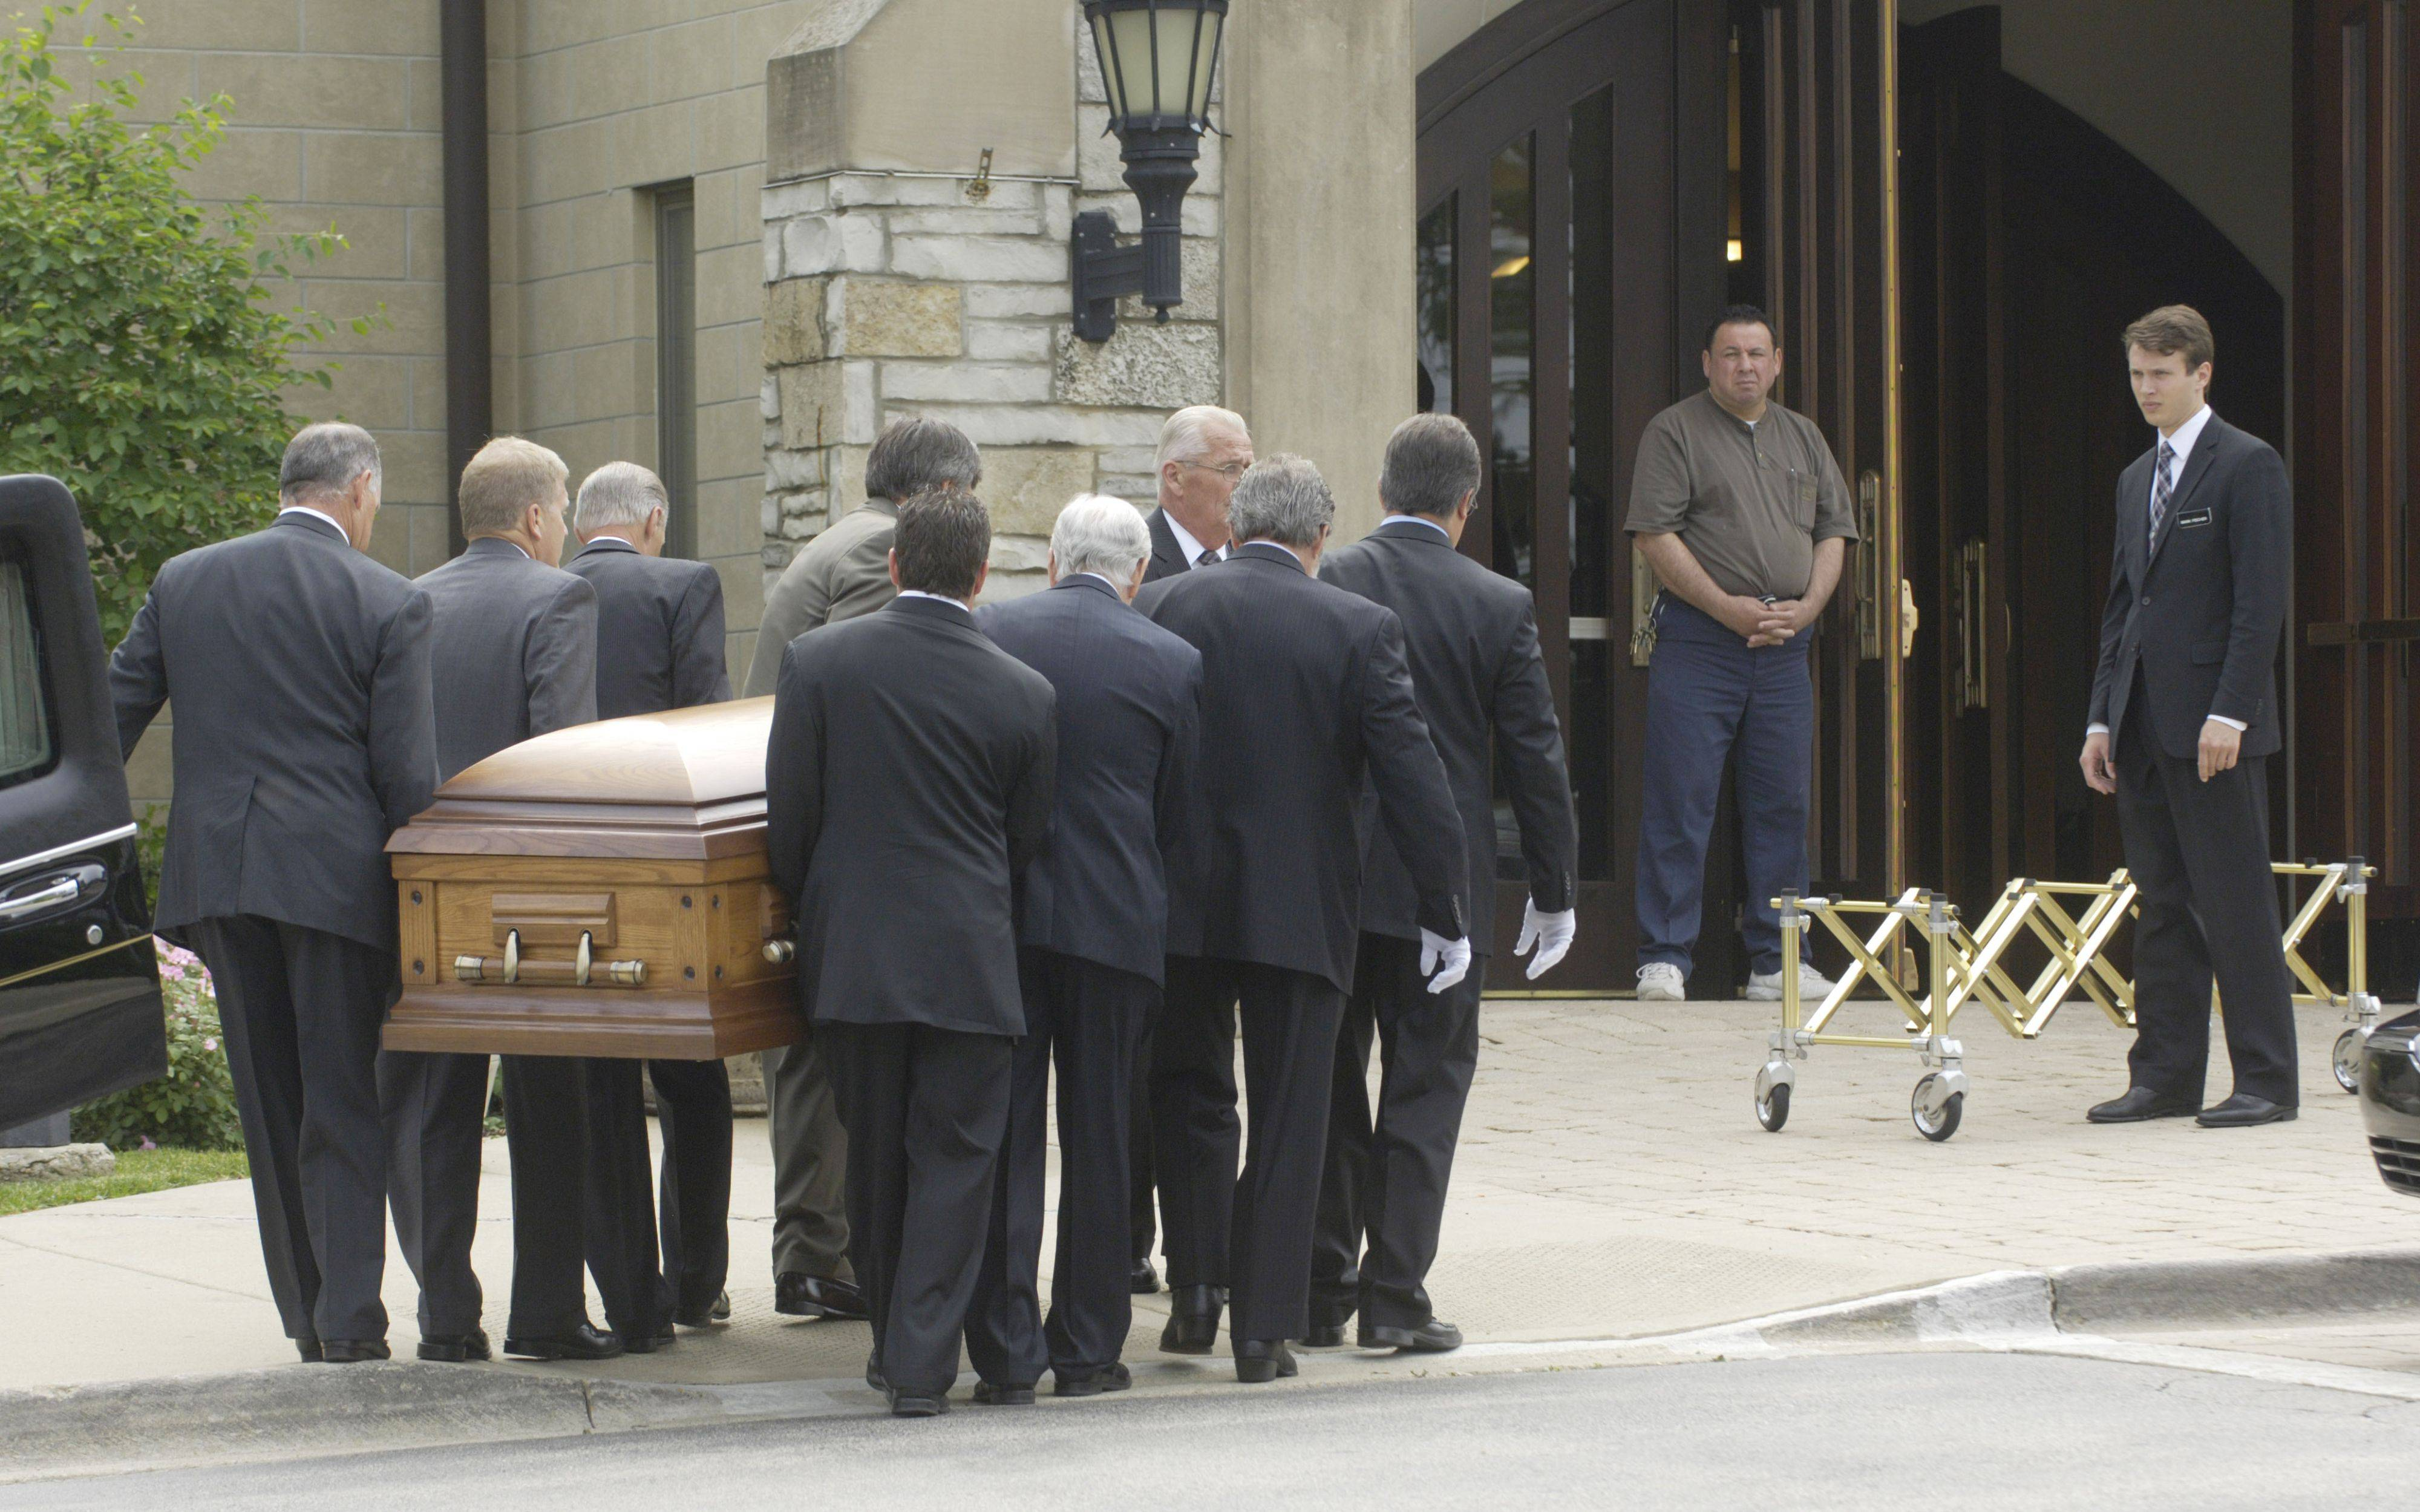 Pallbearers carry the casket from the hearse into St. Anne Catholic Church in Barrington.